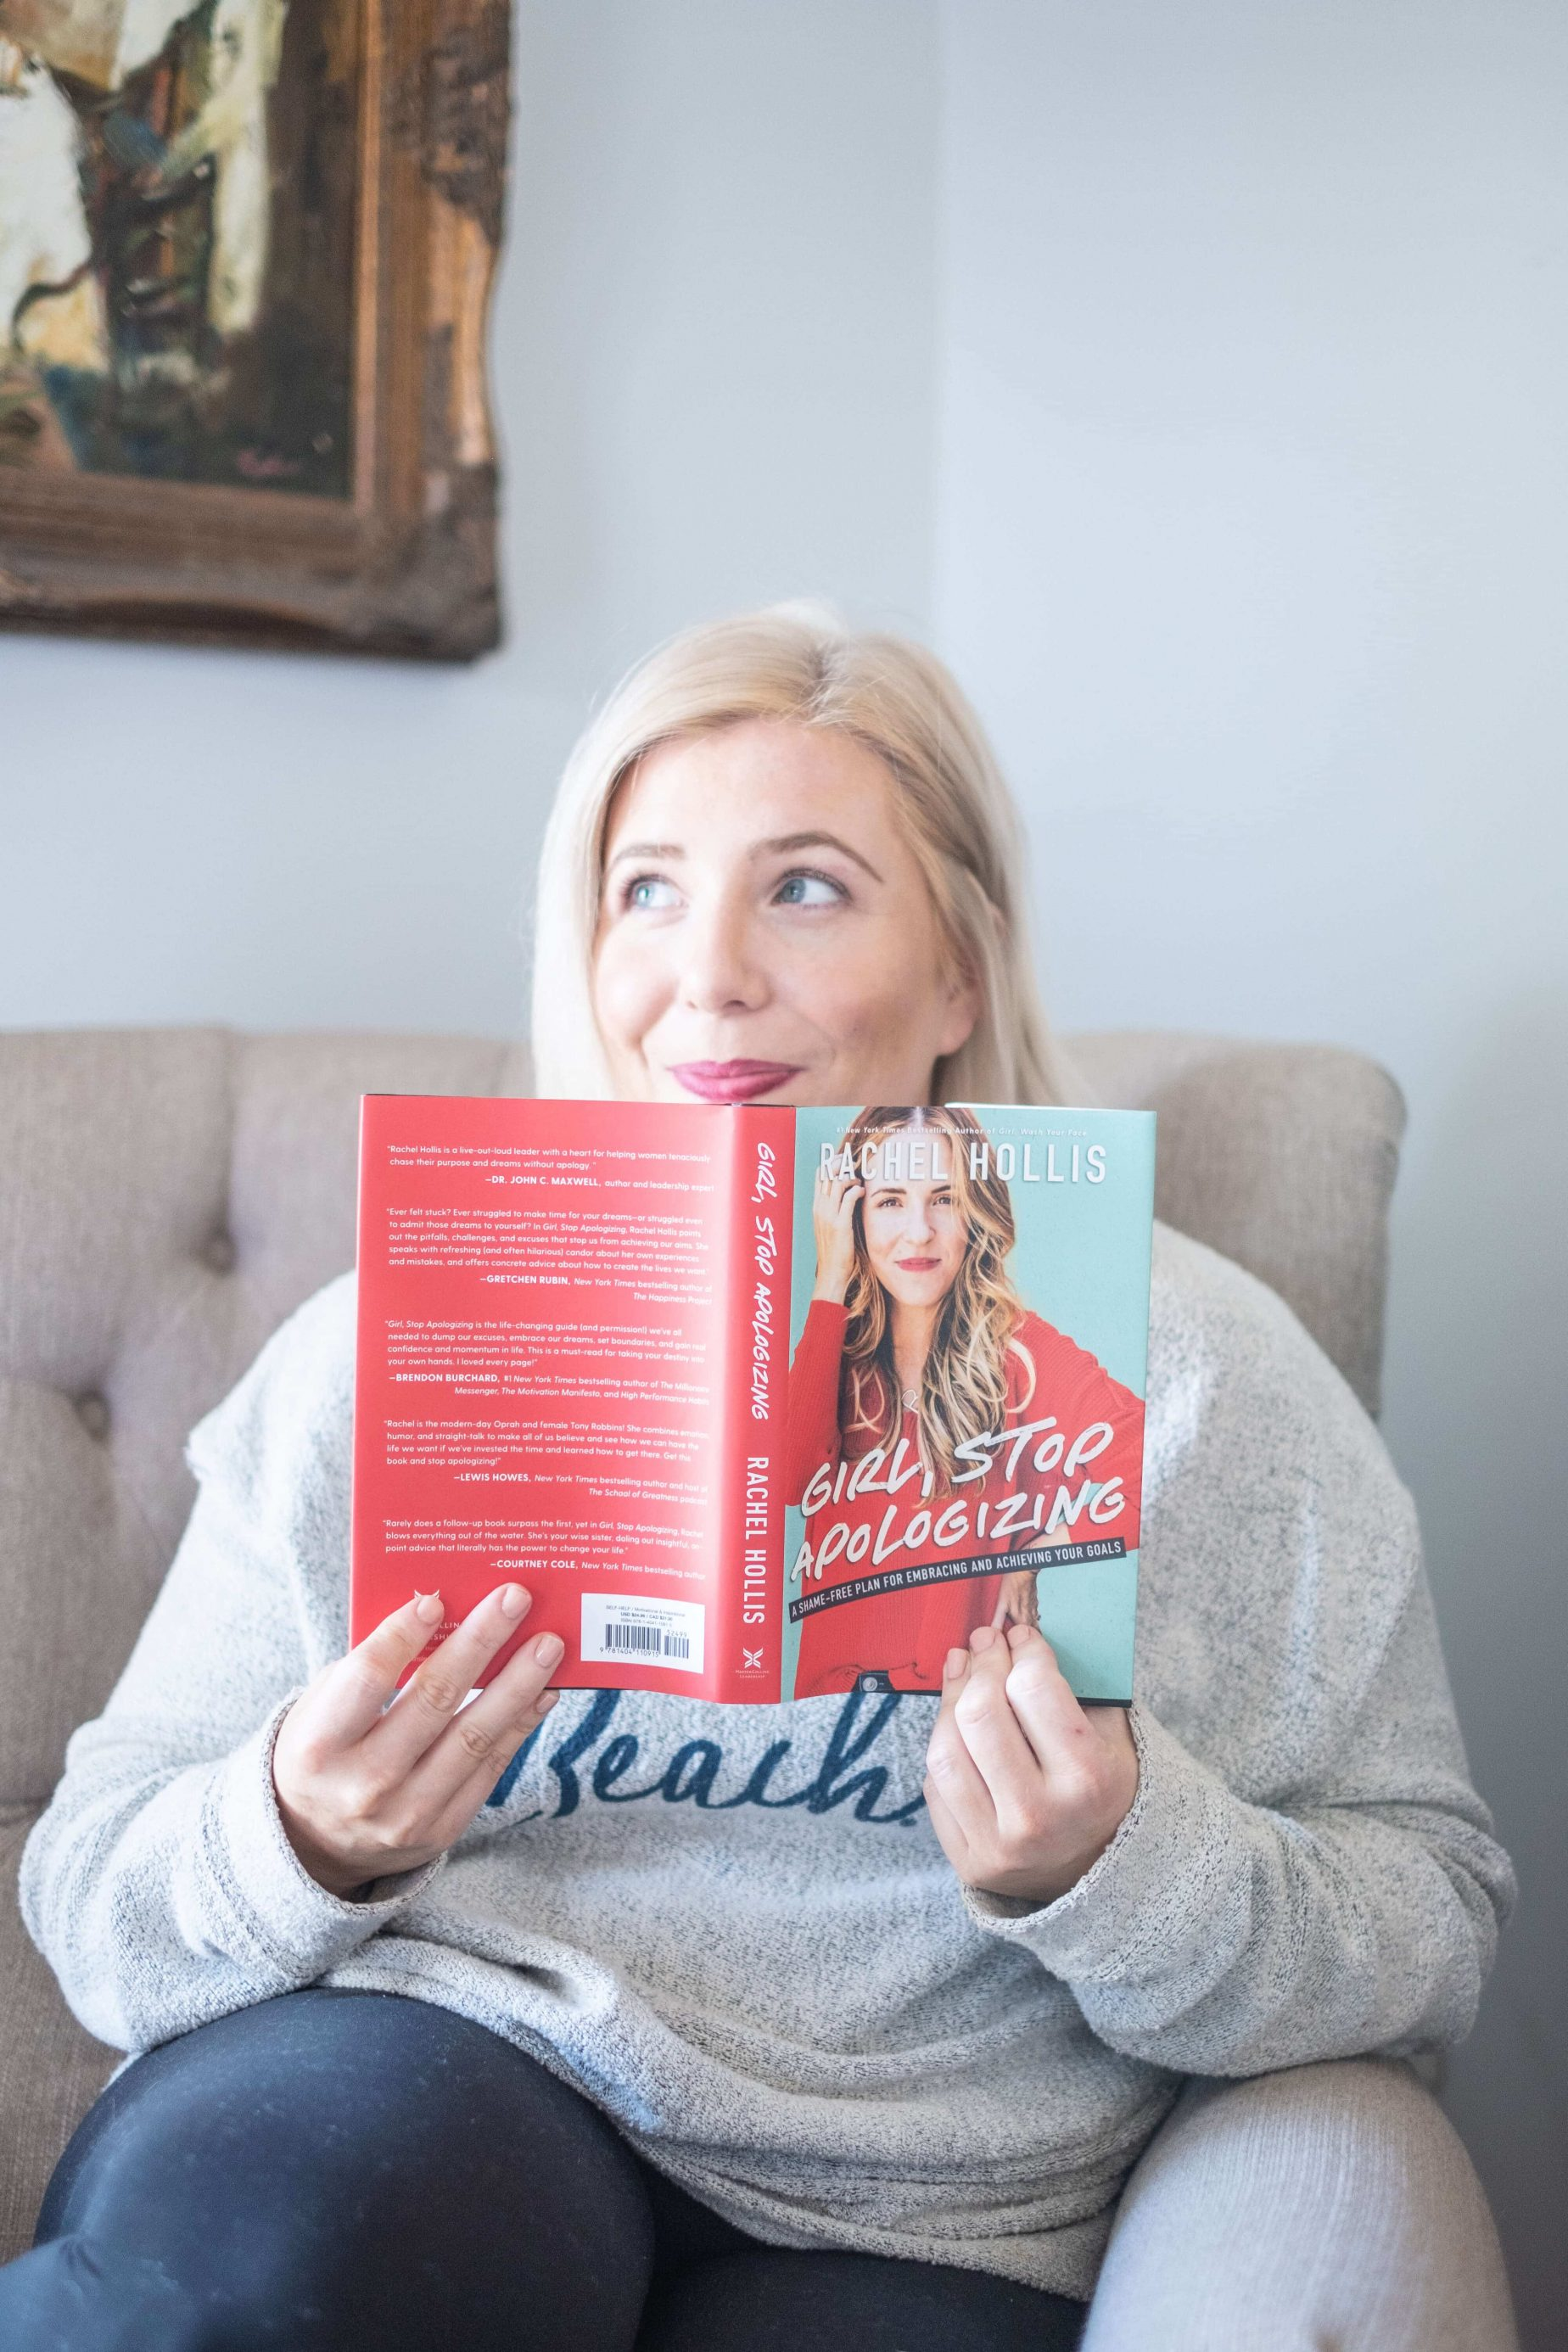 Girl, Stop Apologizing Review- Are You Ready For It- #whatsavvysaid #lifestyleblogger #girlstopapologizing #bookreview #girlstopapologizingreview